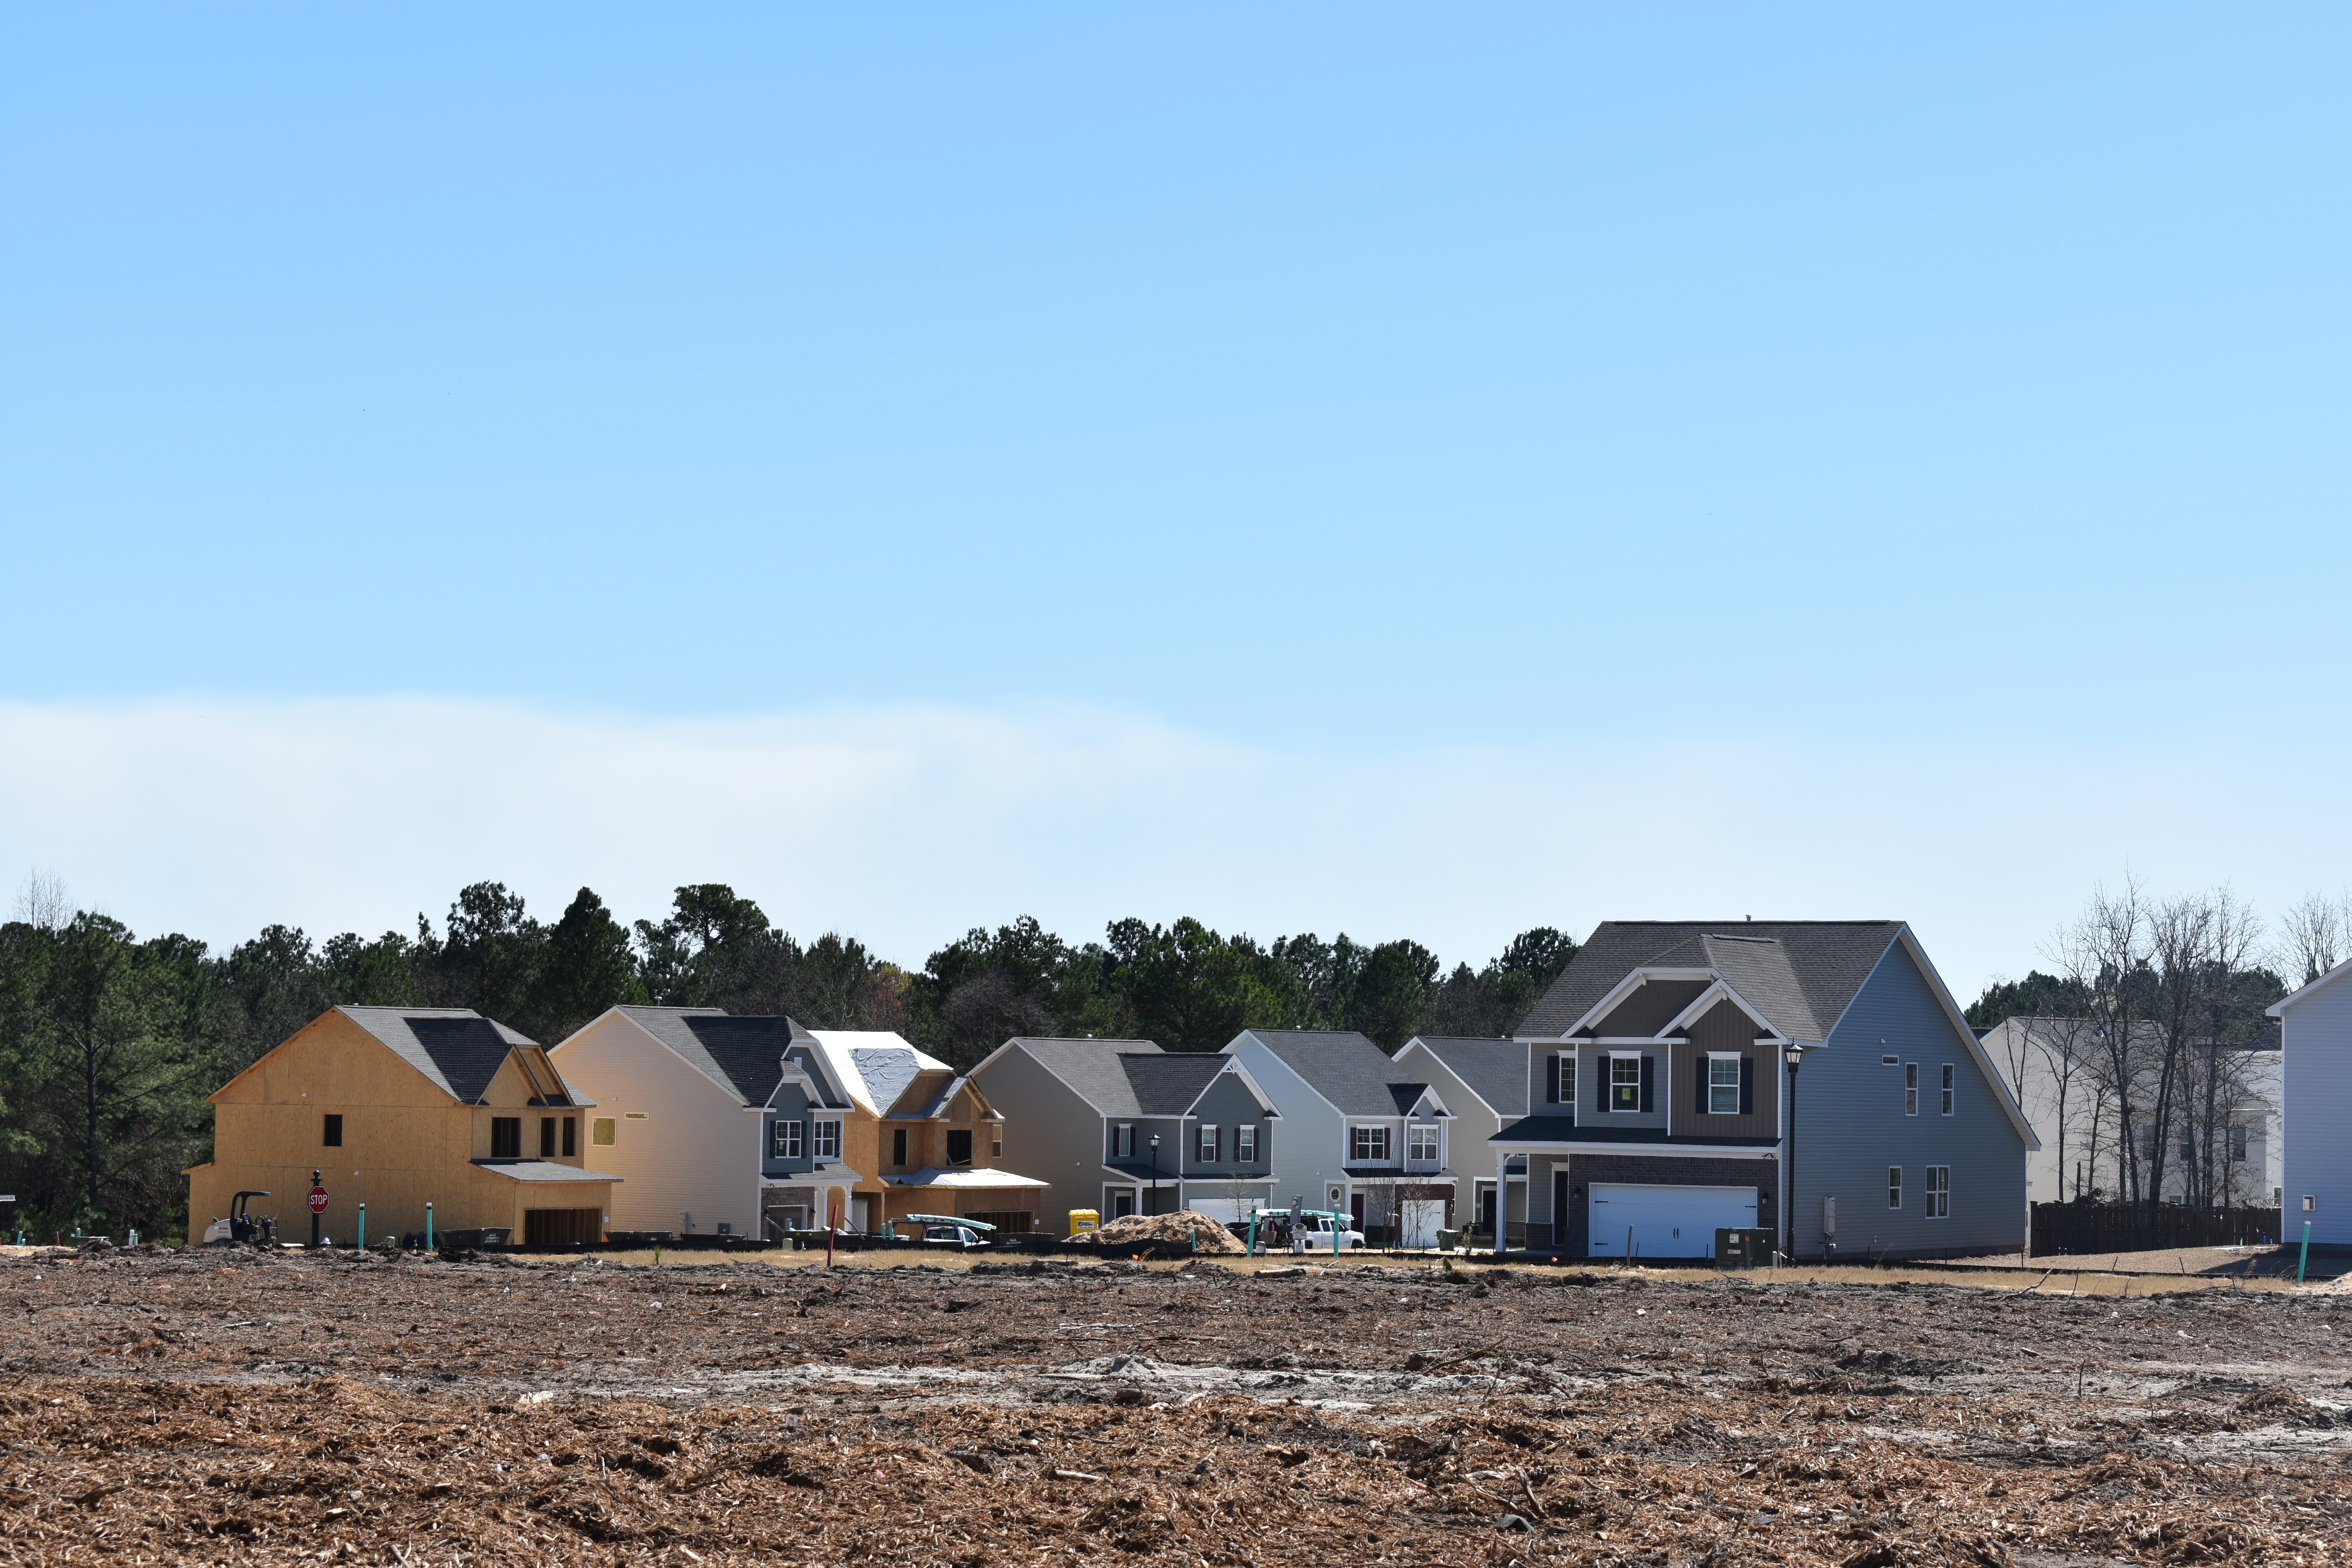 New Construction Homes in Northeast Columbia, SC Under $200,000